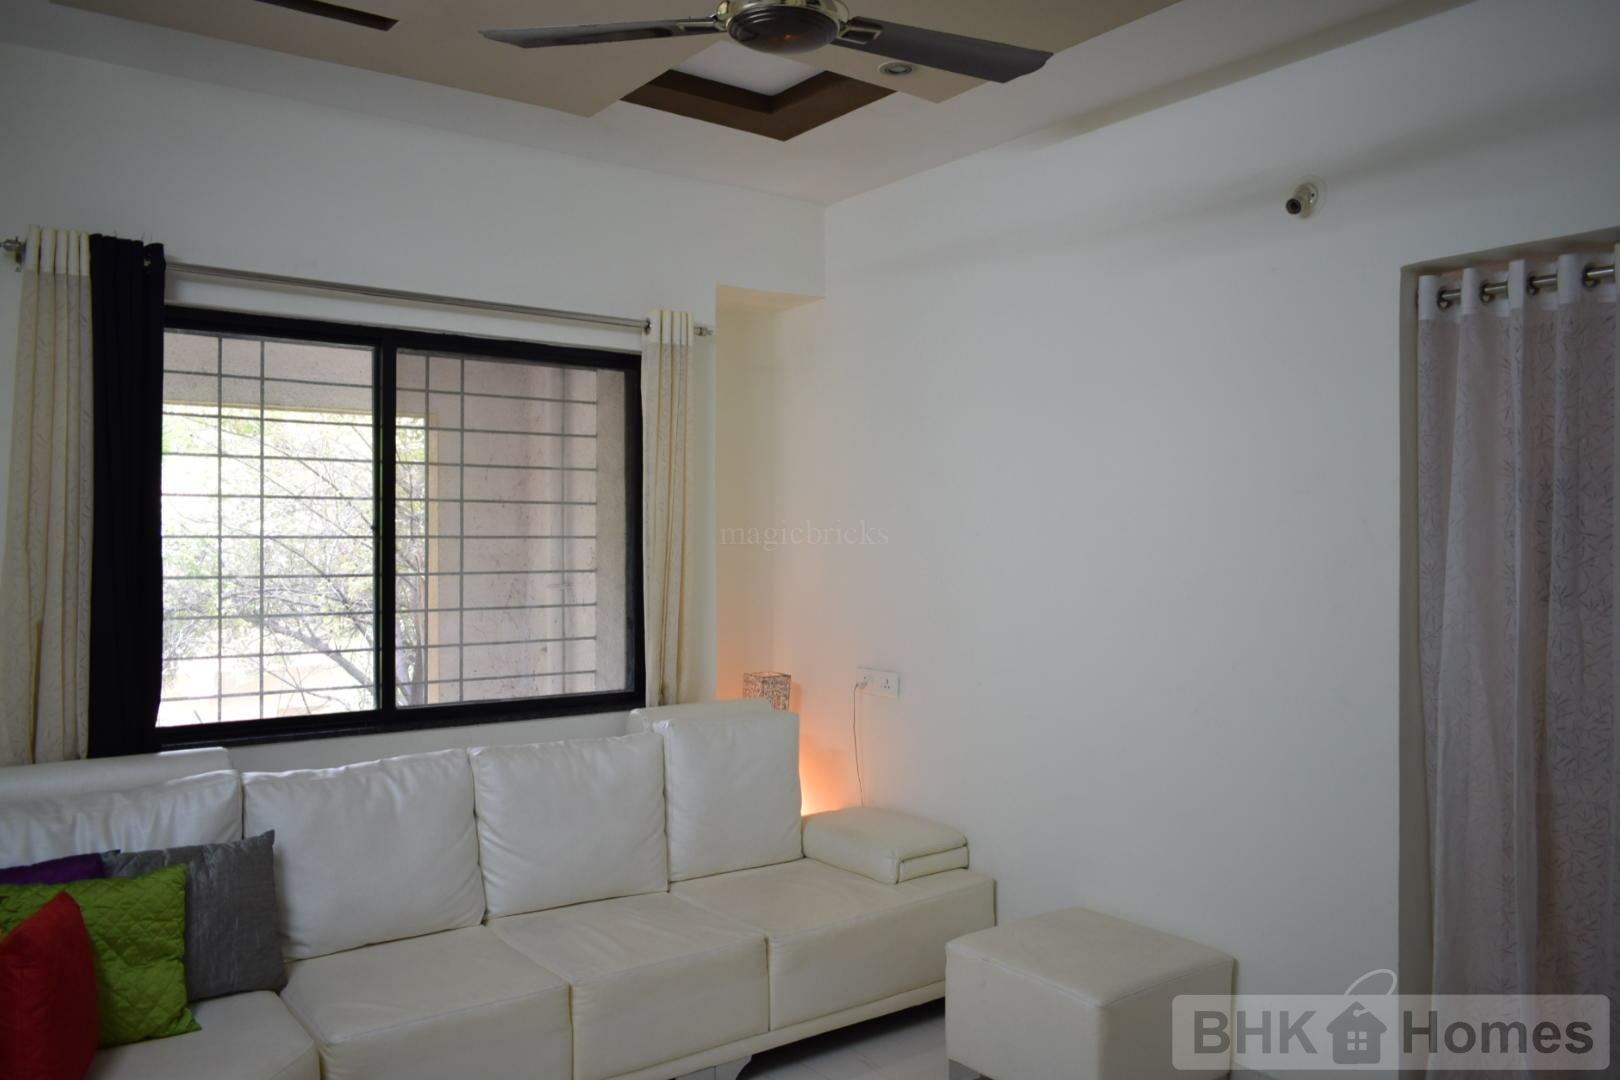 2 BHK 850 Sq-ft Flat/Apartment for Sale